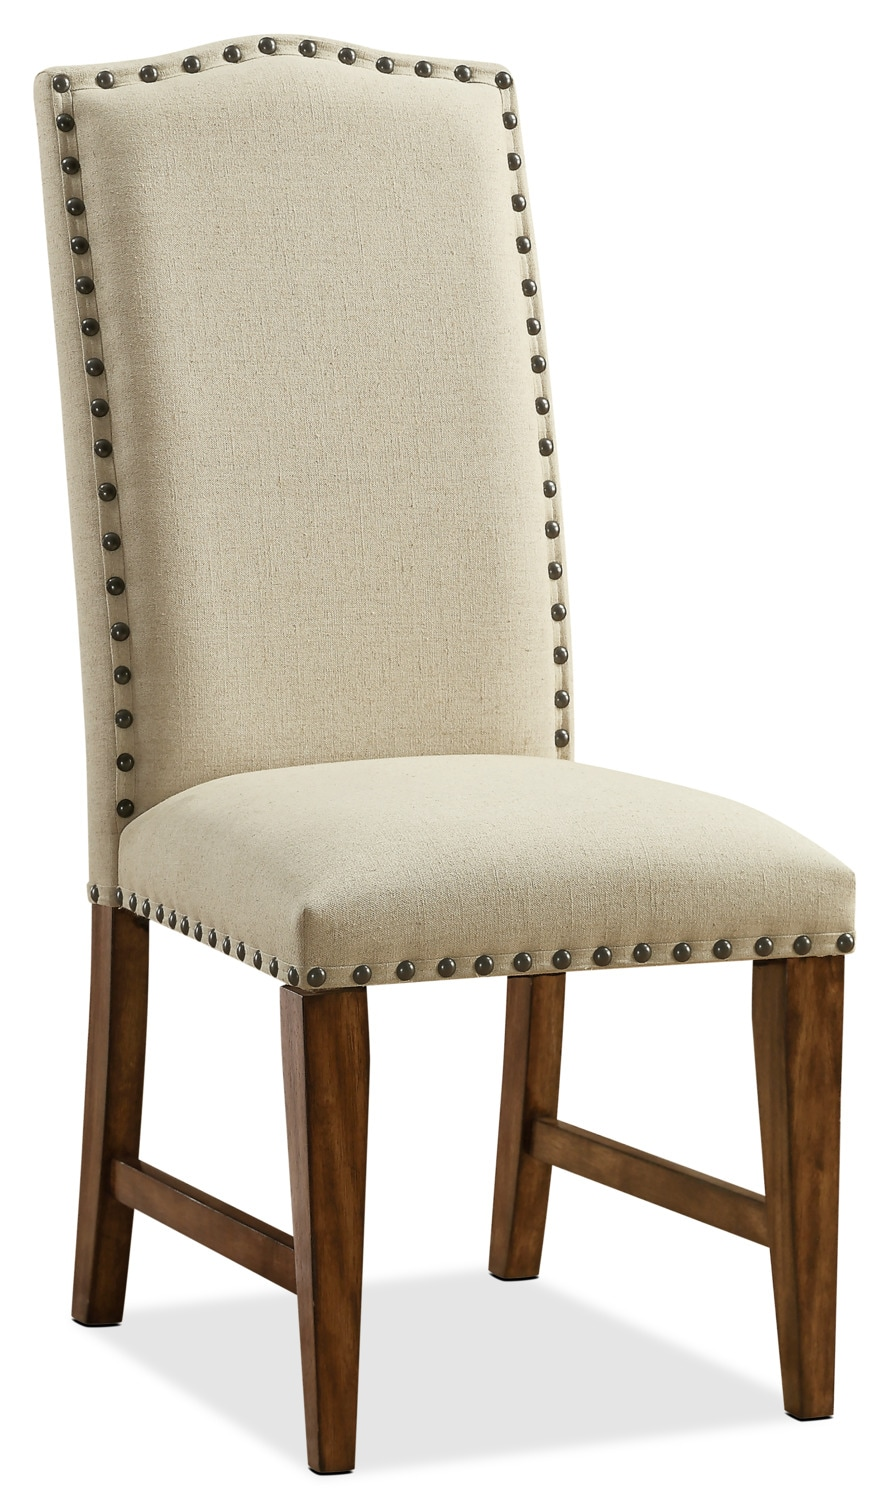 Dining Room Furniture - Alpine Dining Chair – Beige